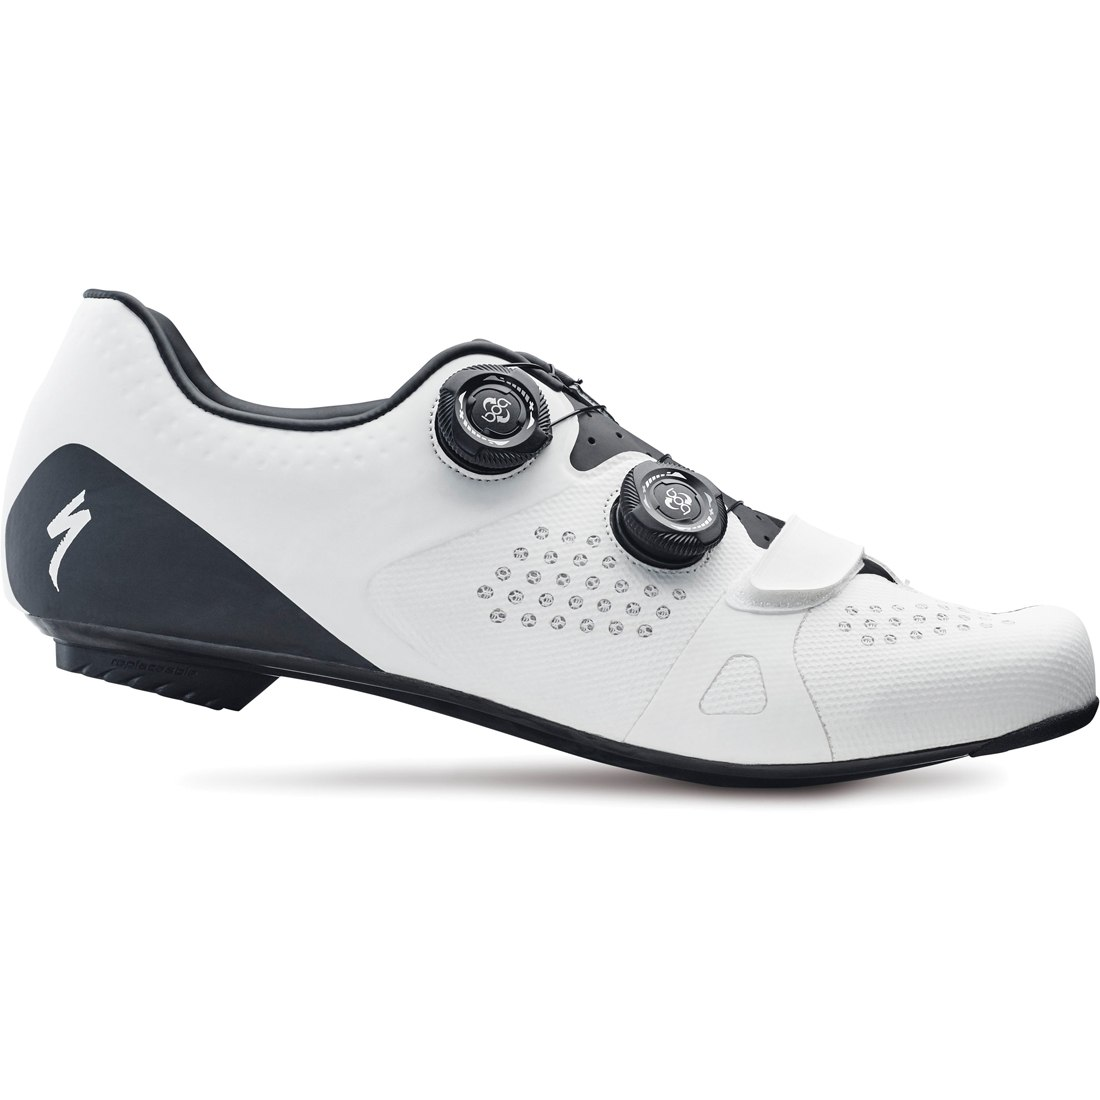 Specialized Torch 3.0 Road Shoe - White